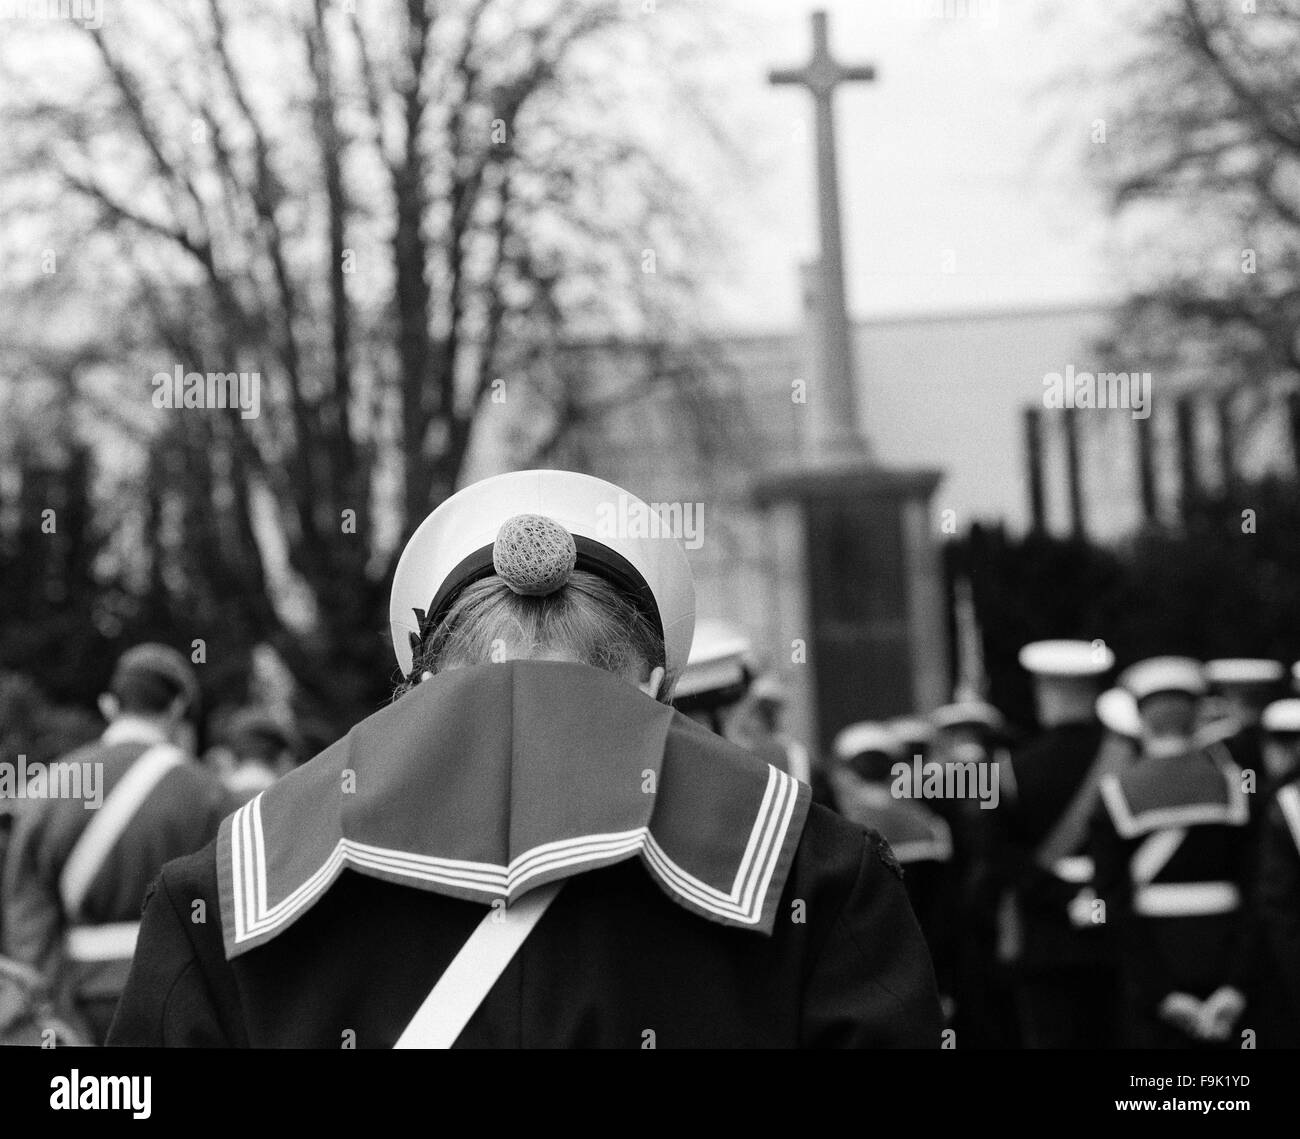 A sea cadet bows her head during the minutes silence at 5the Remembrance Sunday Service in Ashford, Kent. - Stock Image